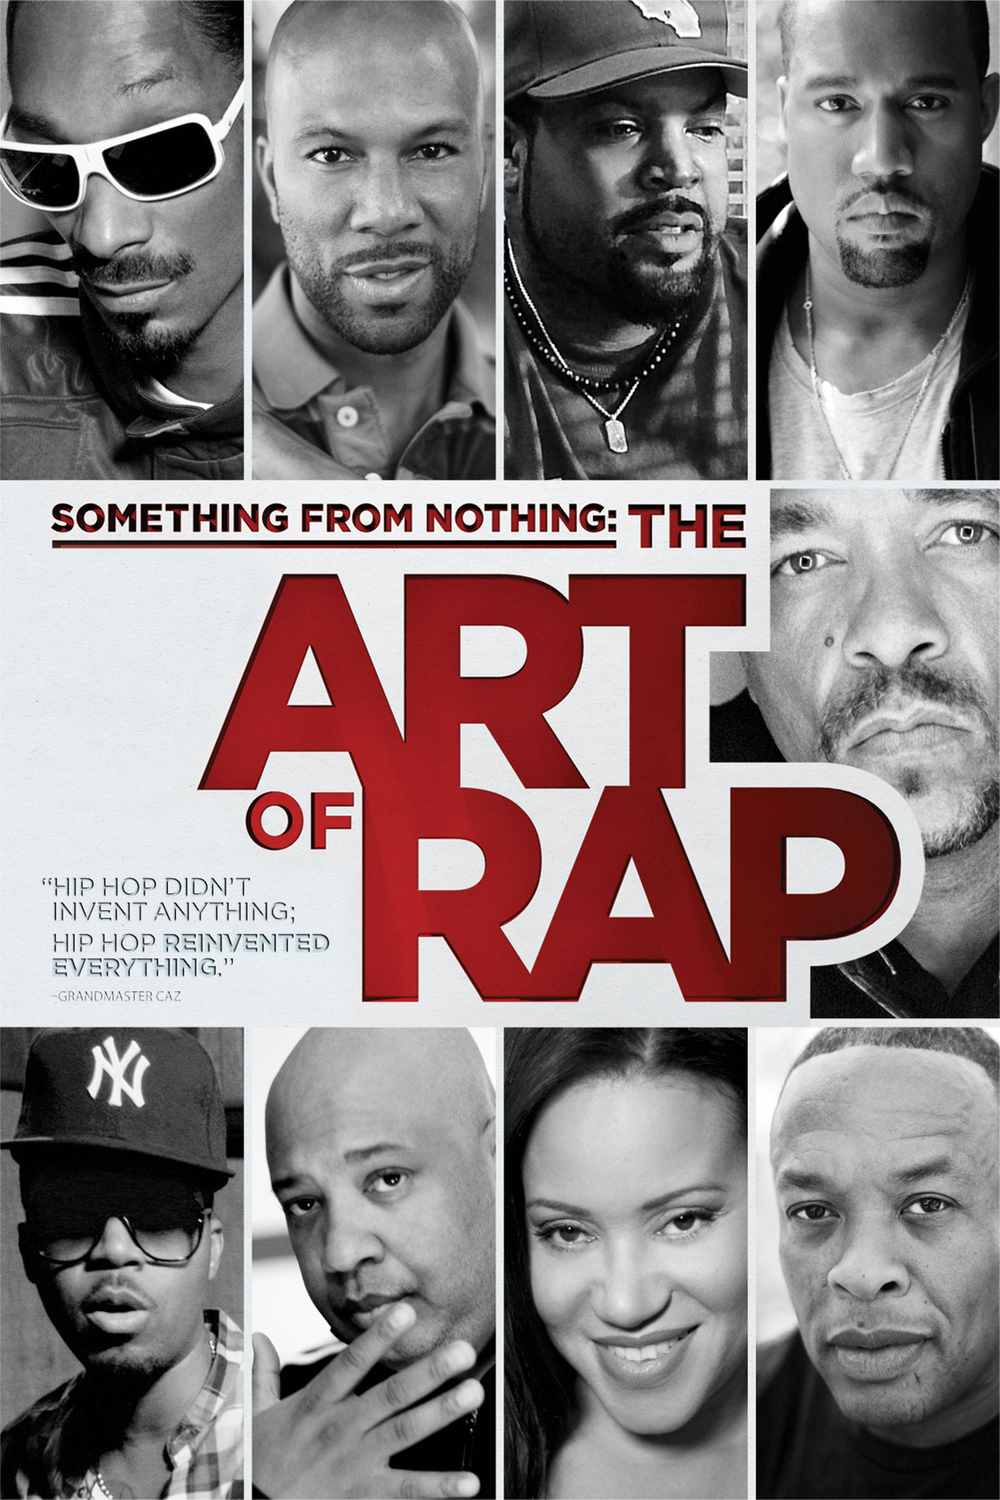 Something from Nothing: The Art of Rap - In his directorial debut, Ice-T interviews dozens of rap artists about their creative processes, and profiles the art form's history and evolution